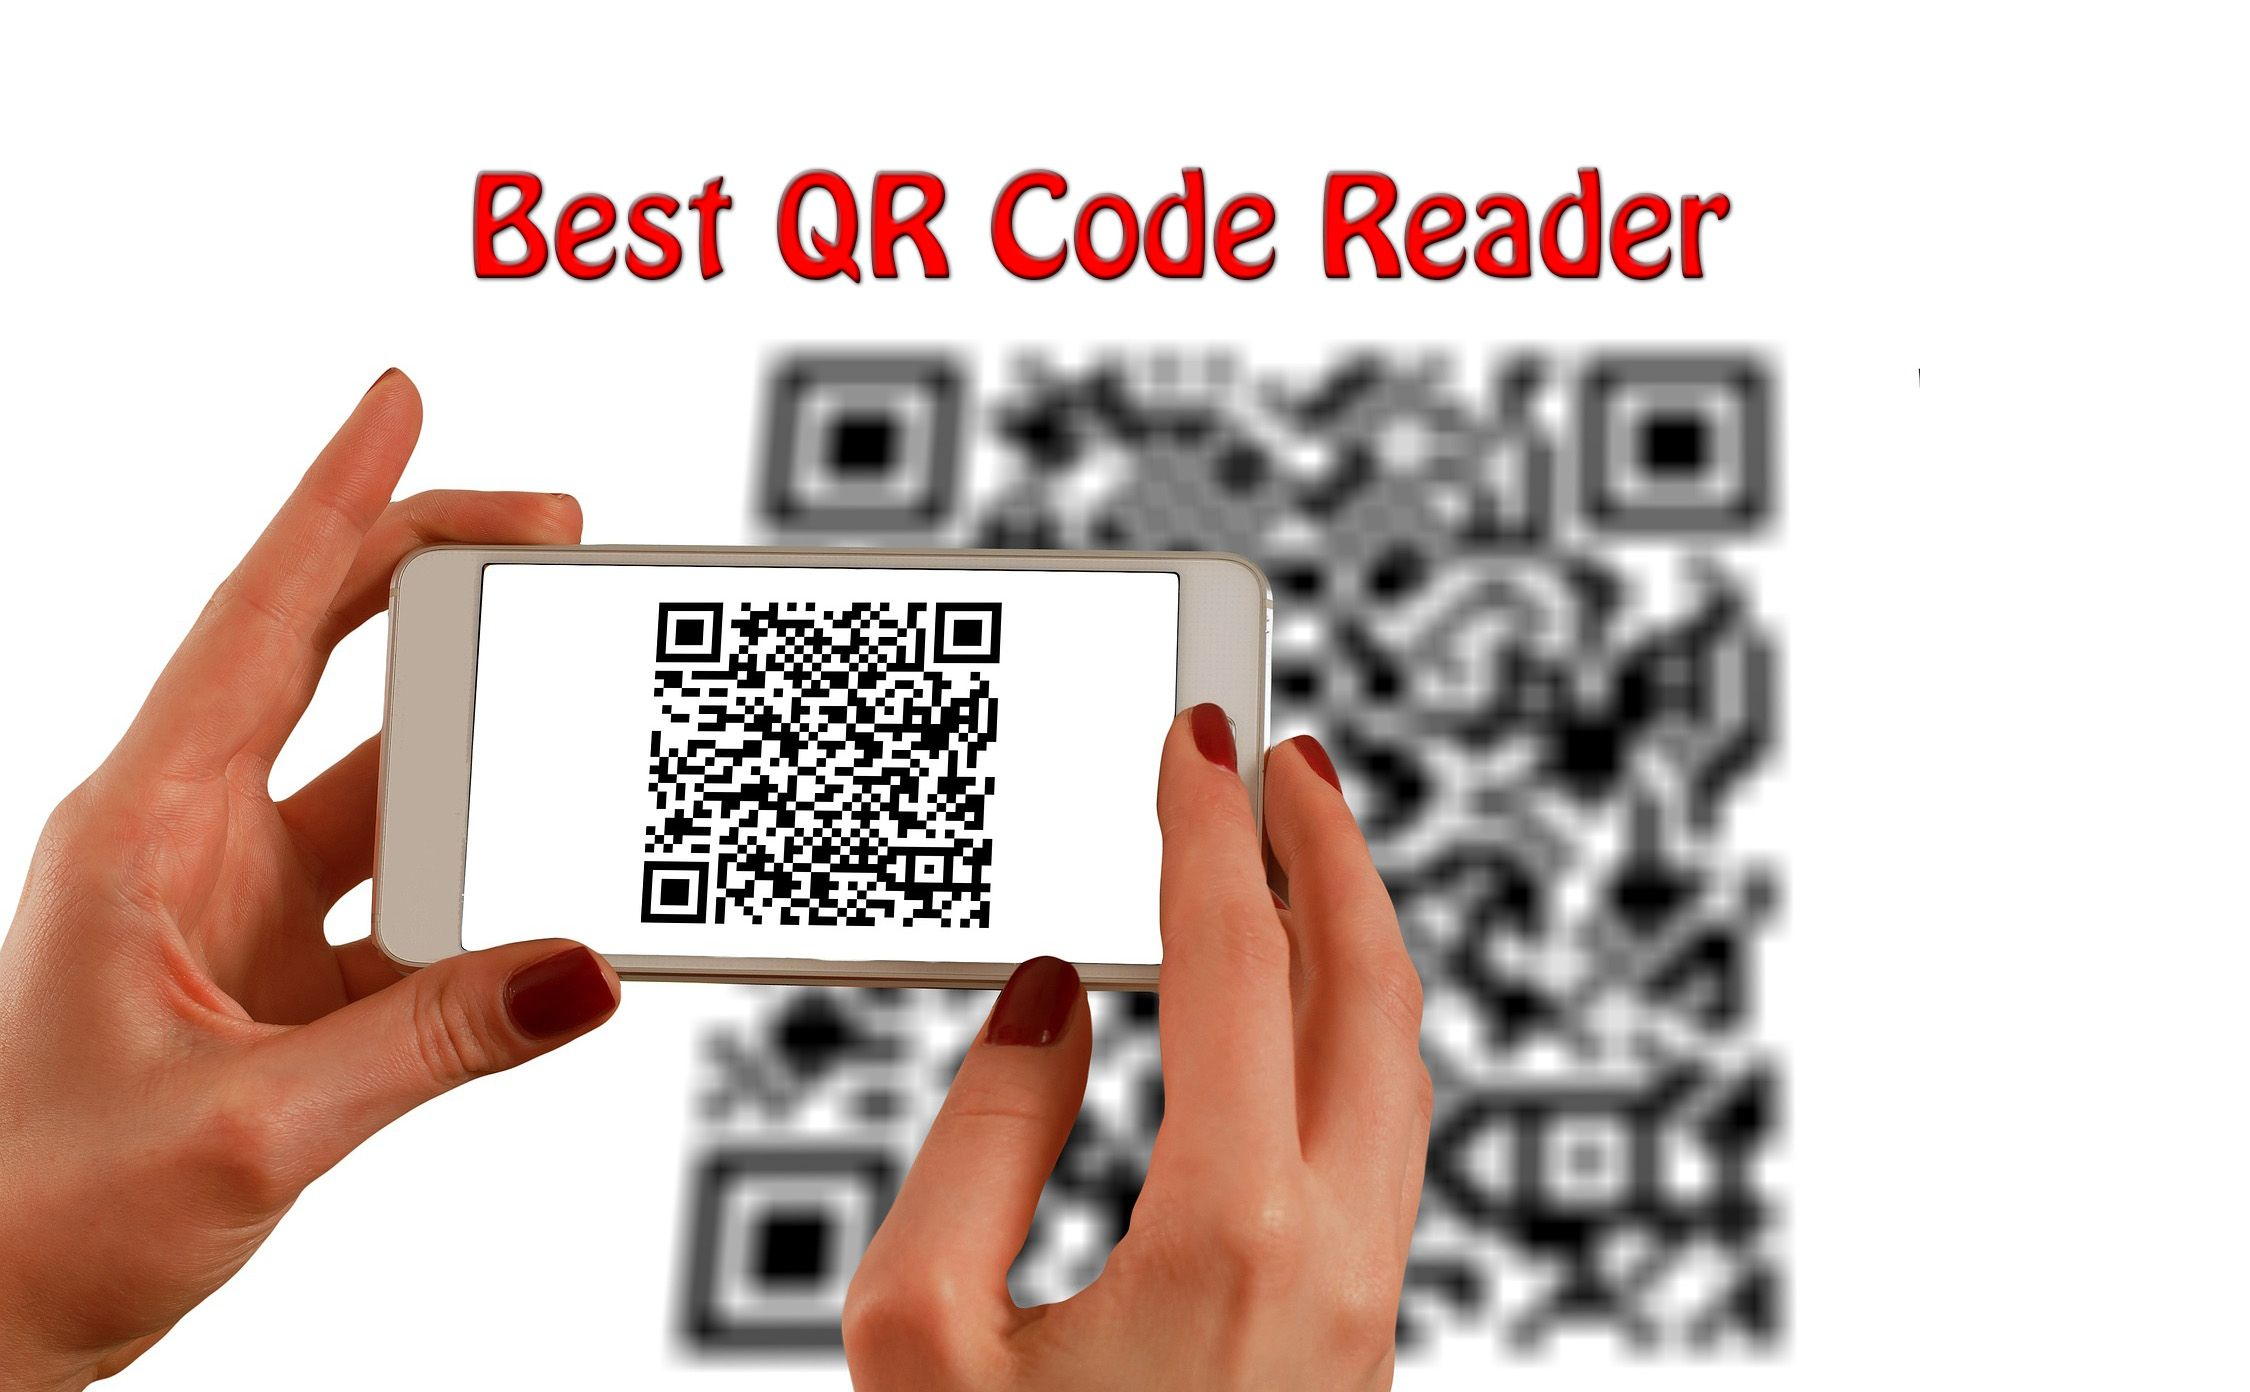 Best Qr Code Reader Android 2019 10 Best QR Code Reader For Android 2019   Technology   Android